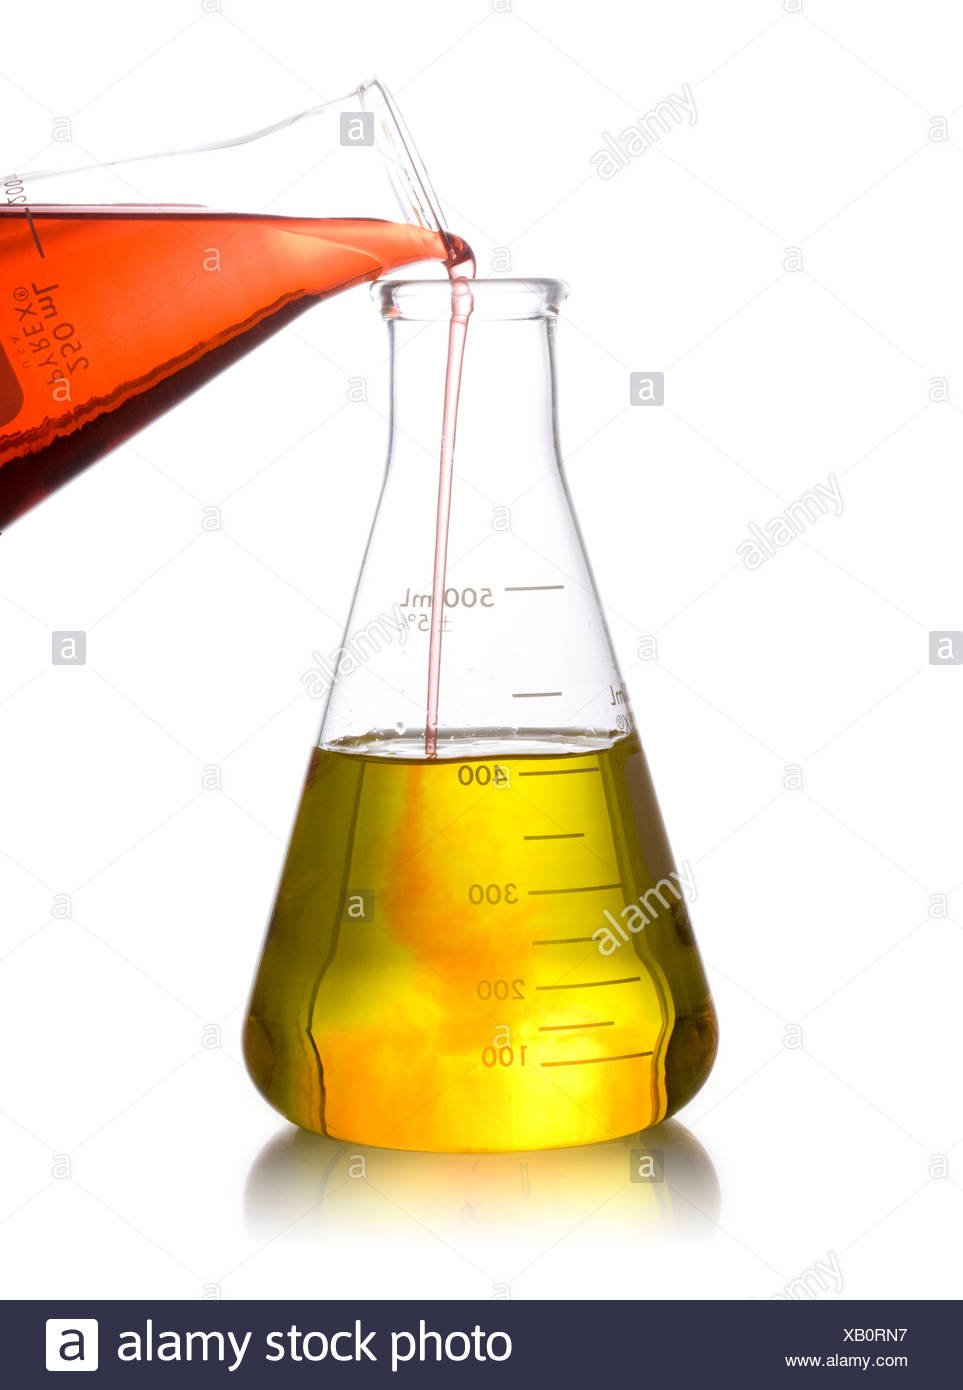 erlenmeyer flask full of liquid - Stock Image